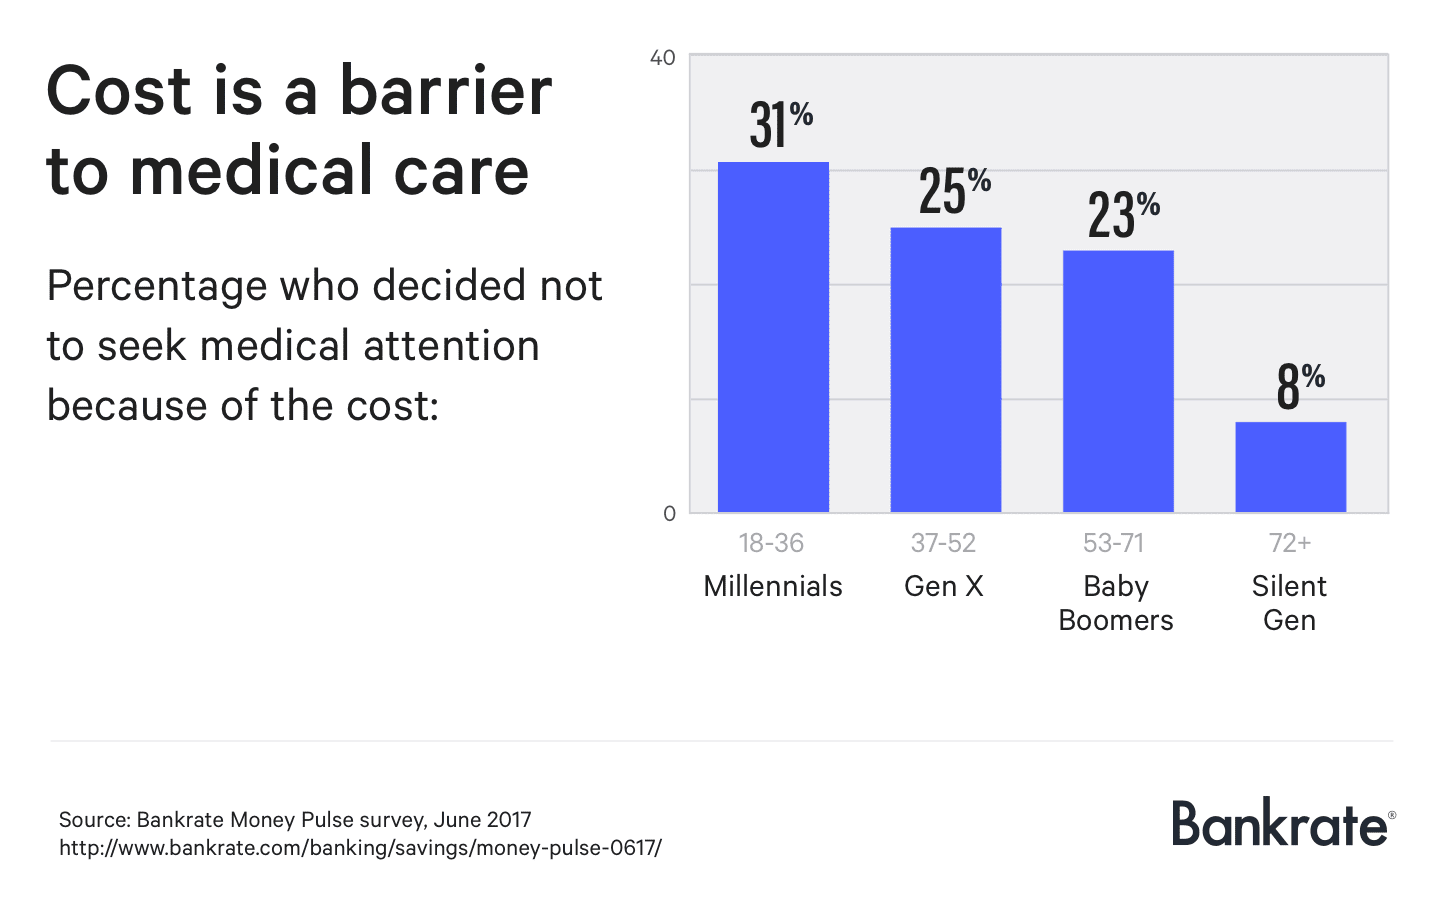 Cost is a barrier to medical care